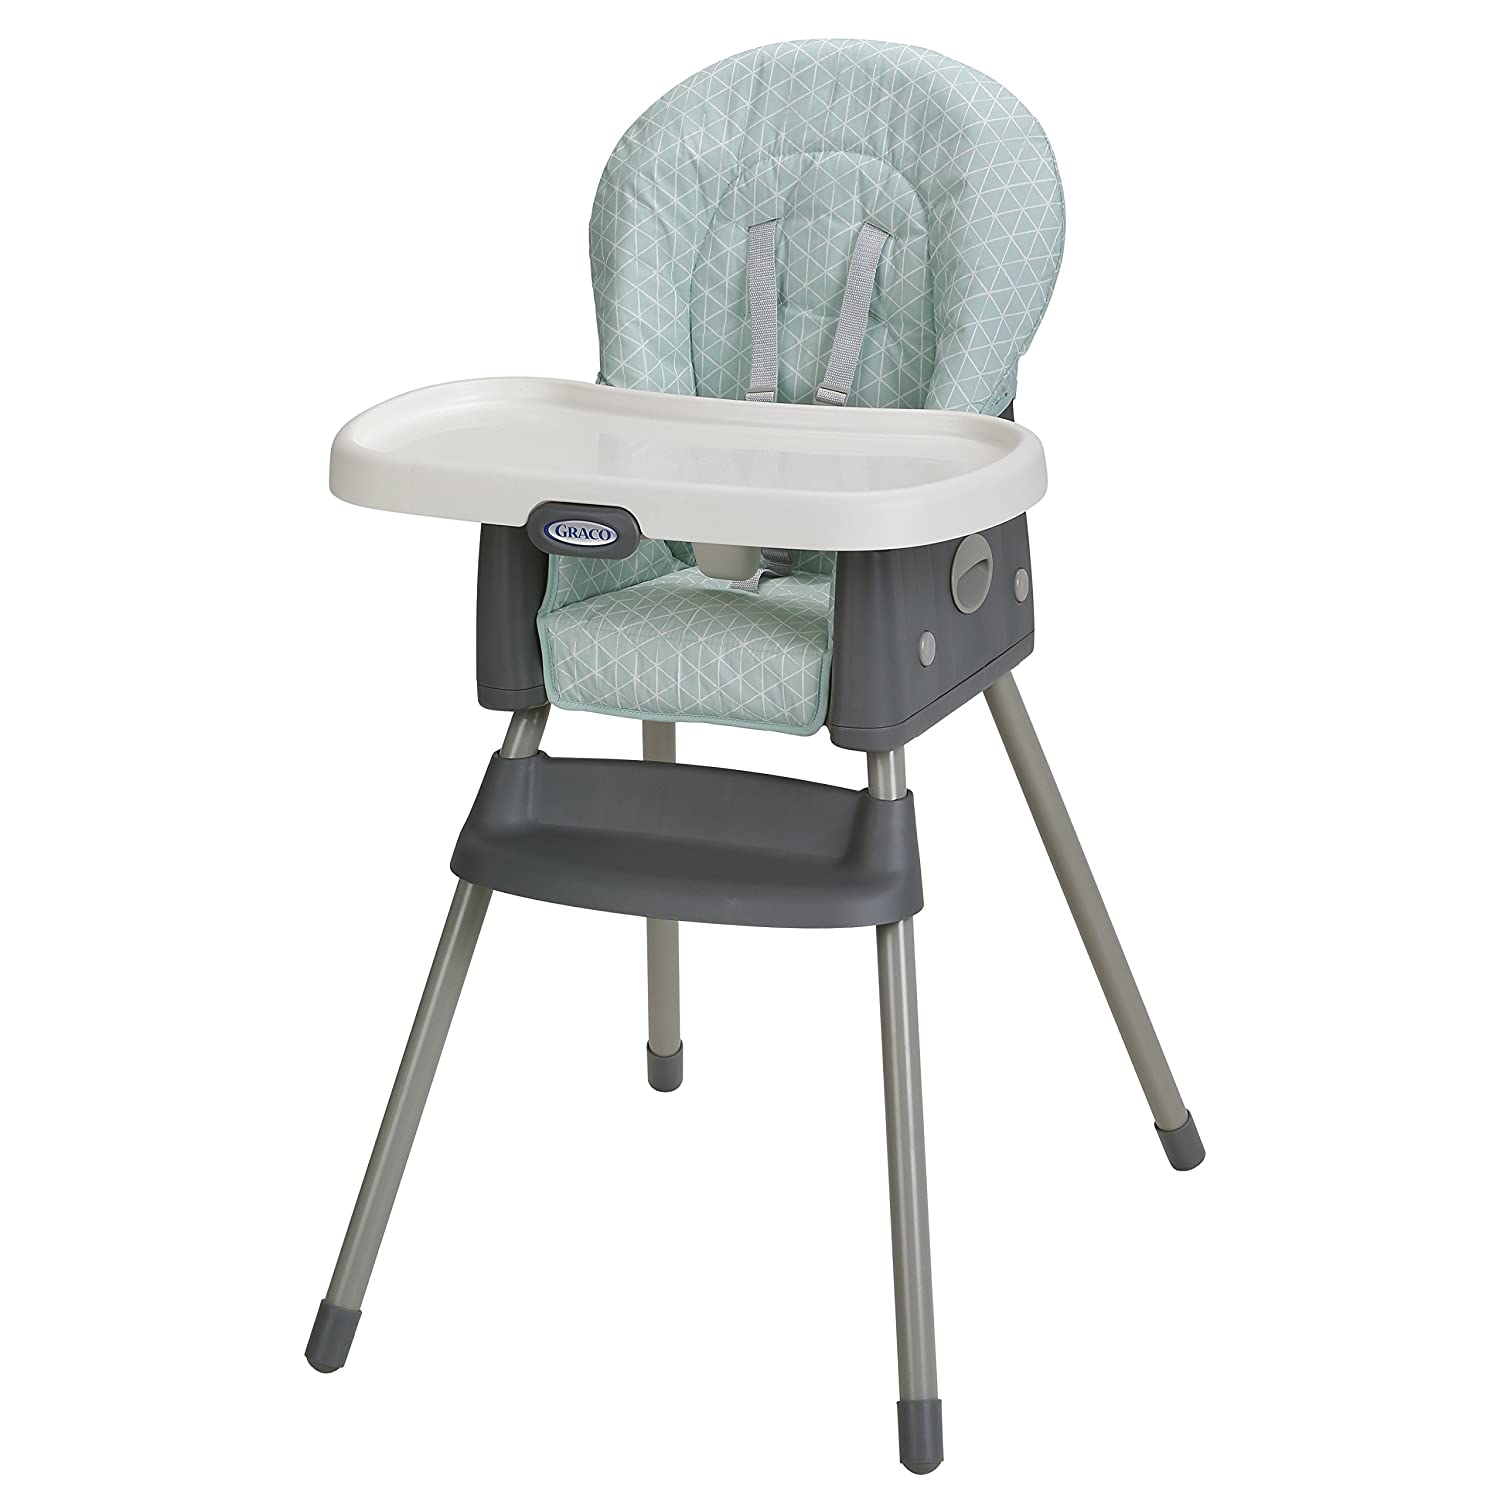 Graco Simple Switch High Chair, Winfield